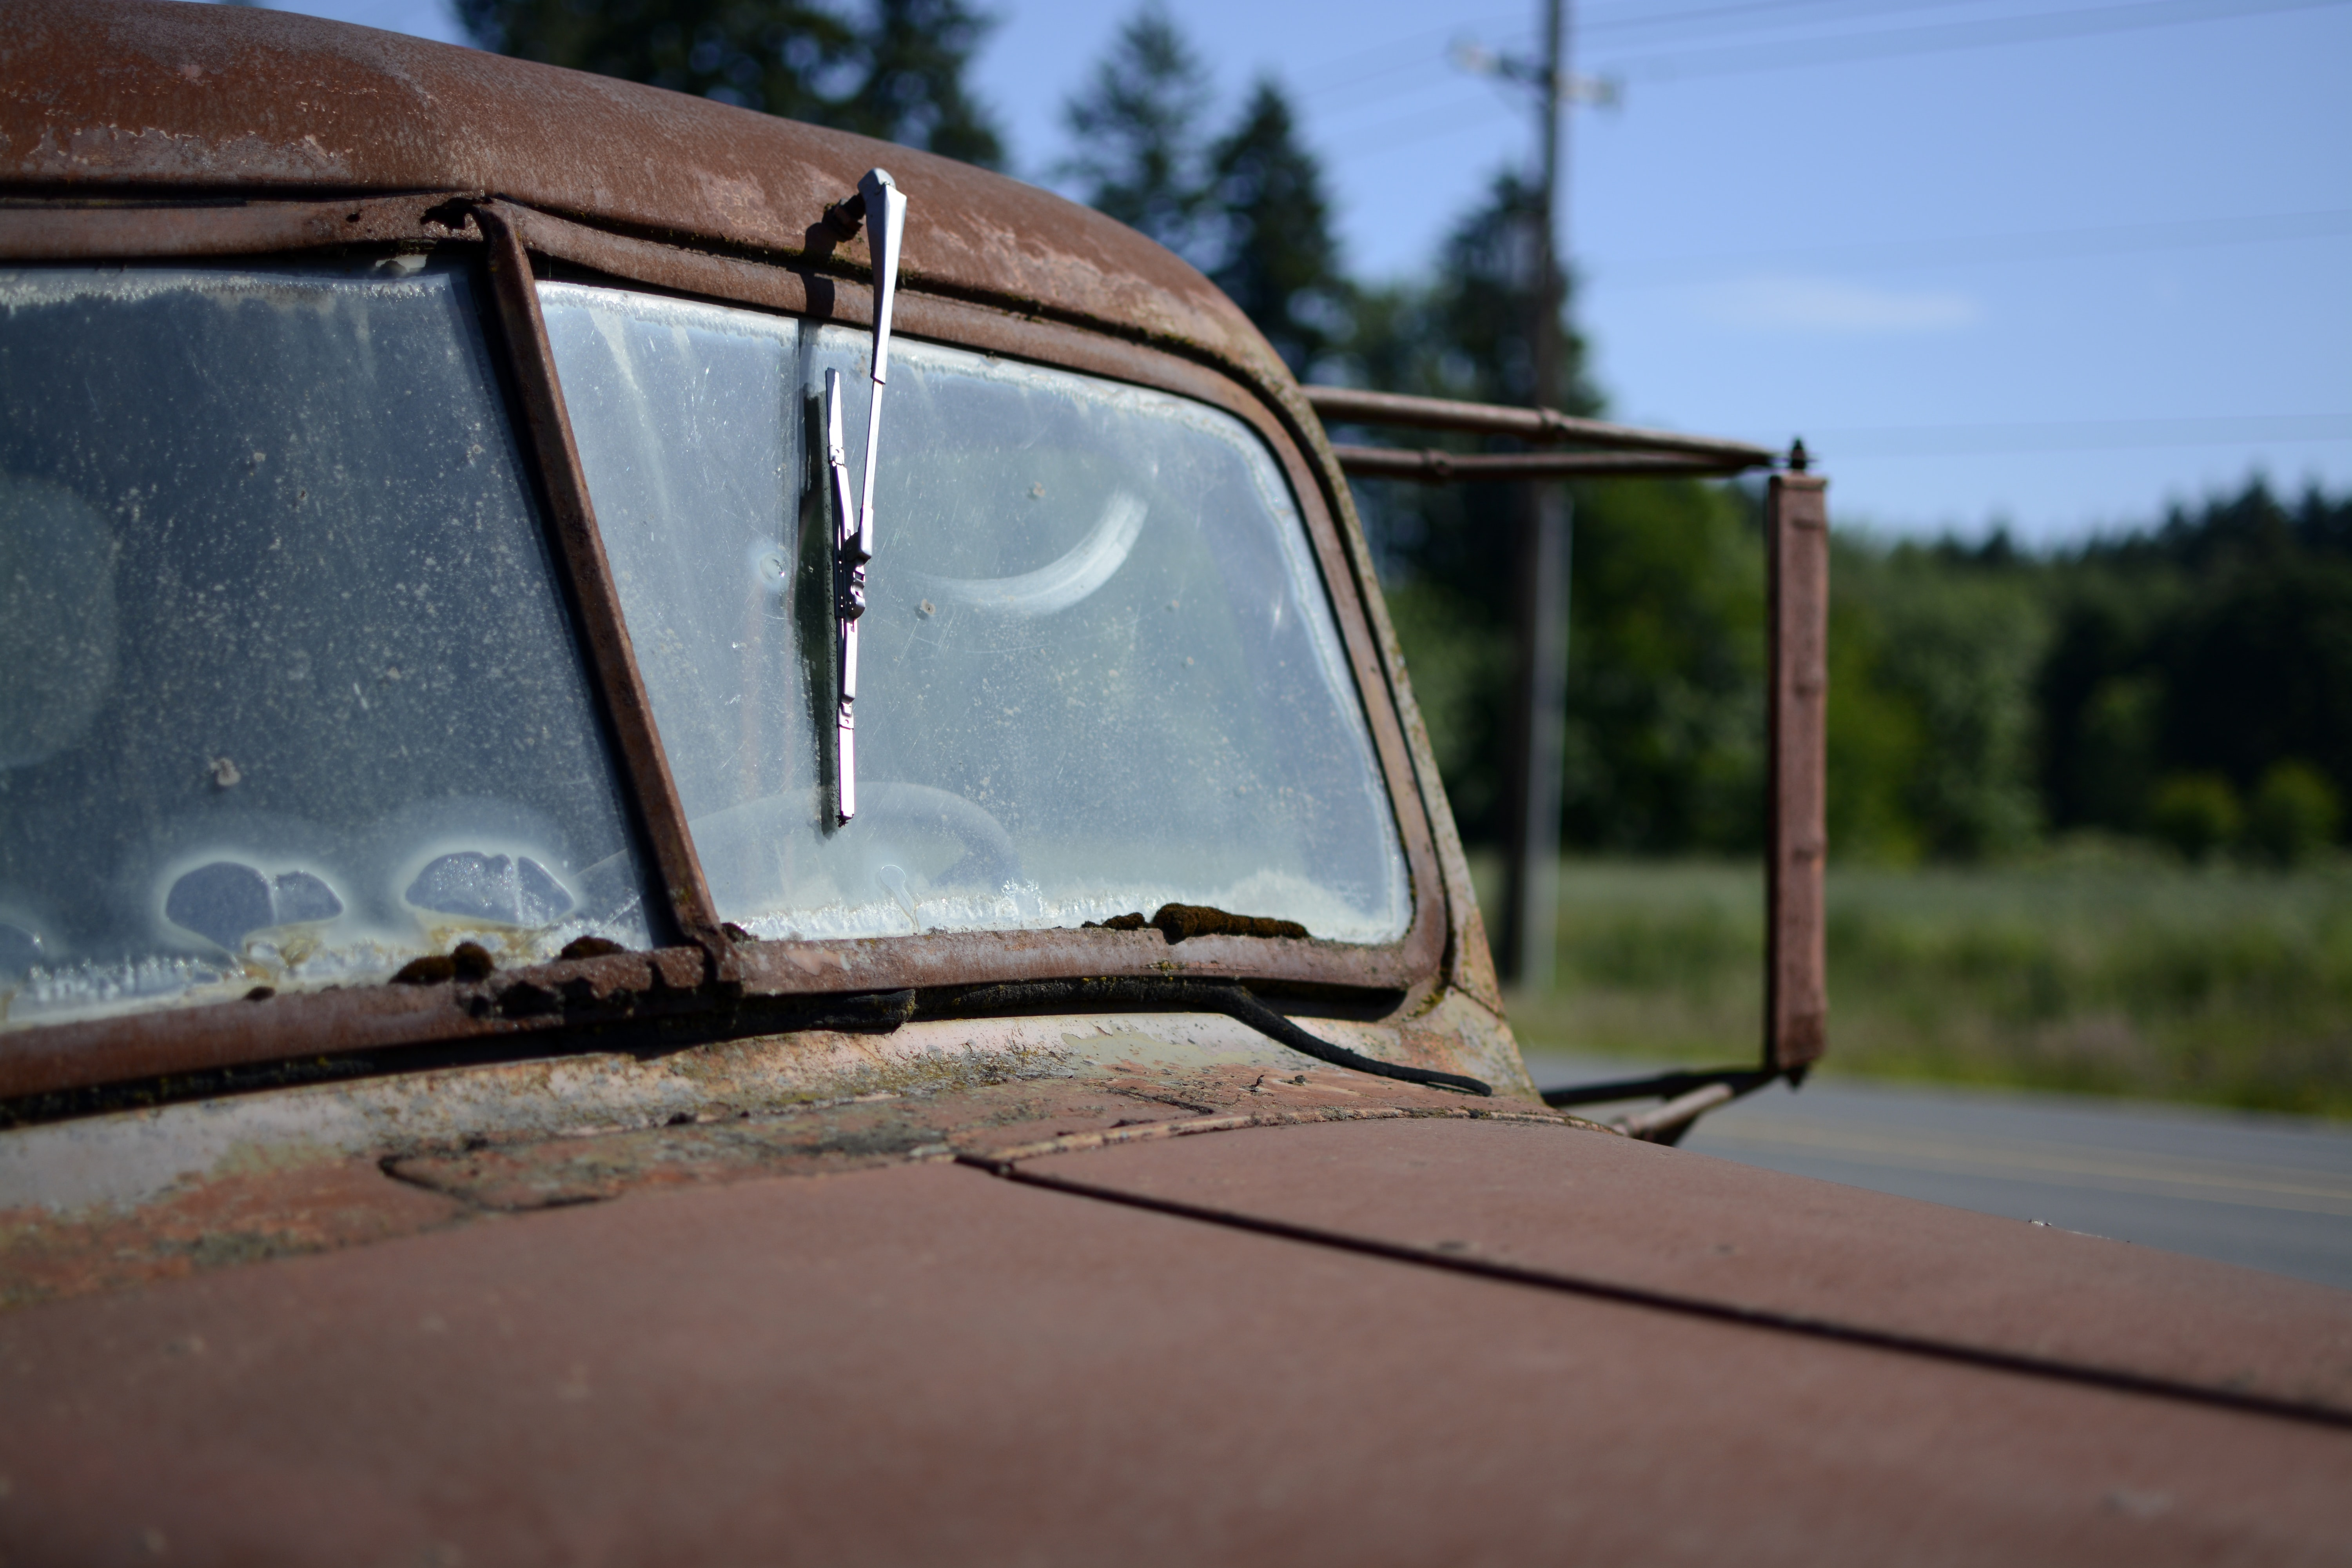 Windshield and broken window wiper of a rusty, burgundy truck in Sherwood during daylight